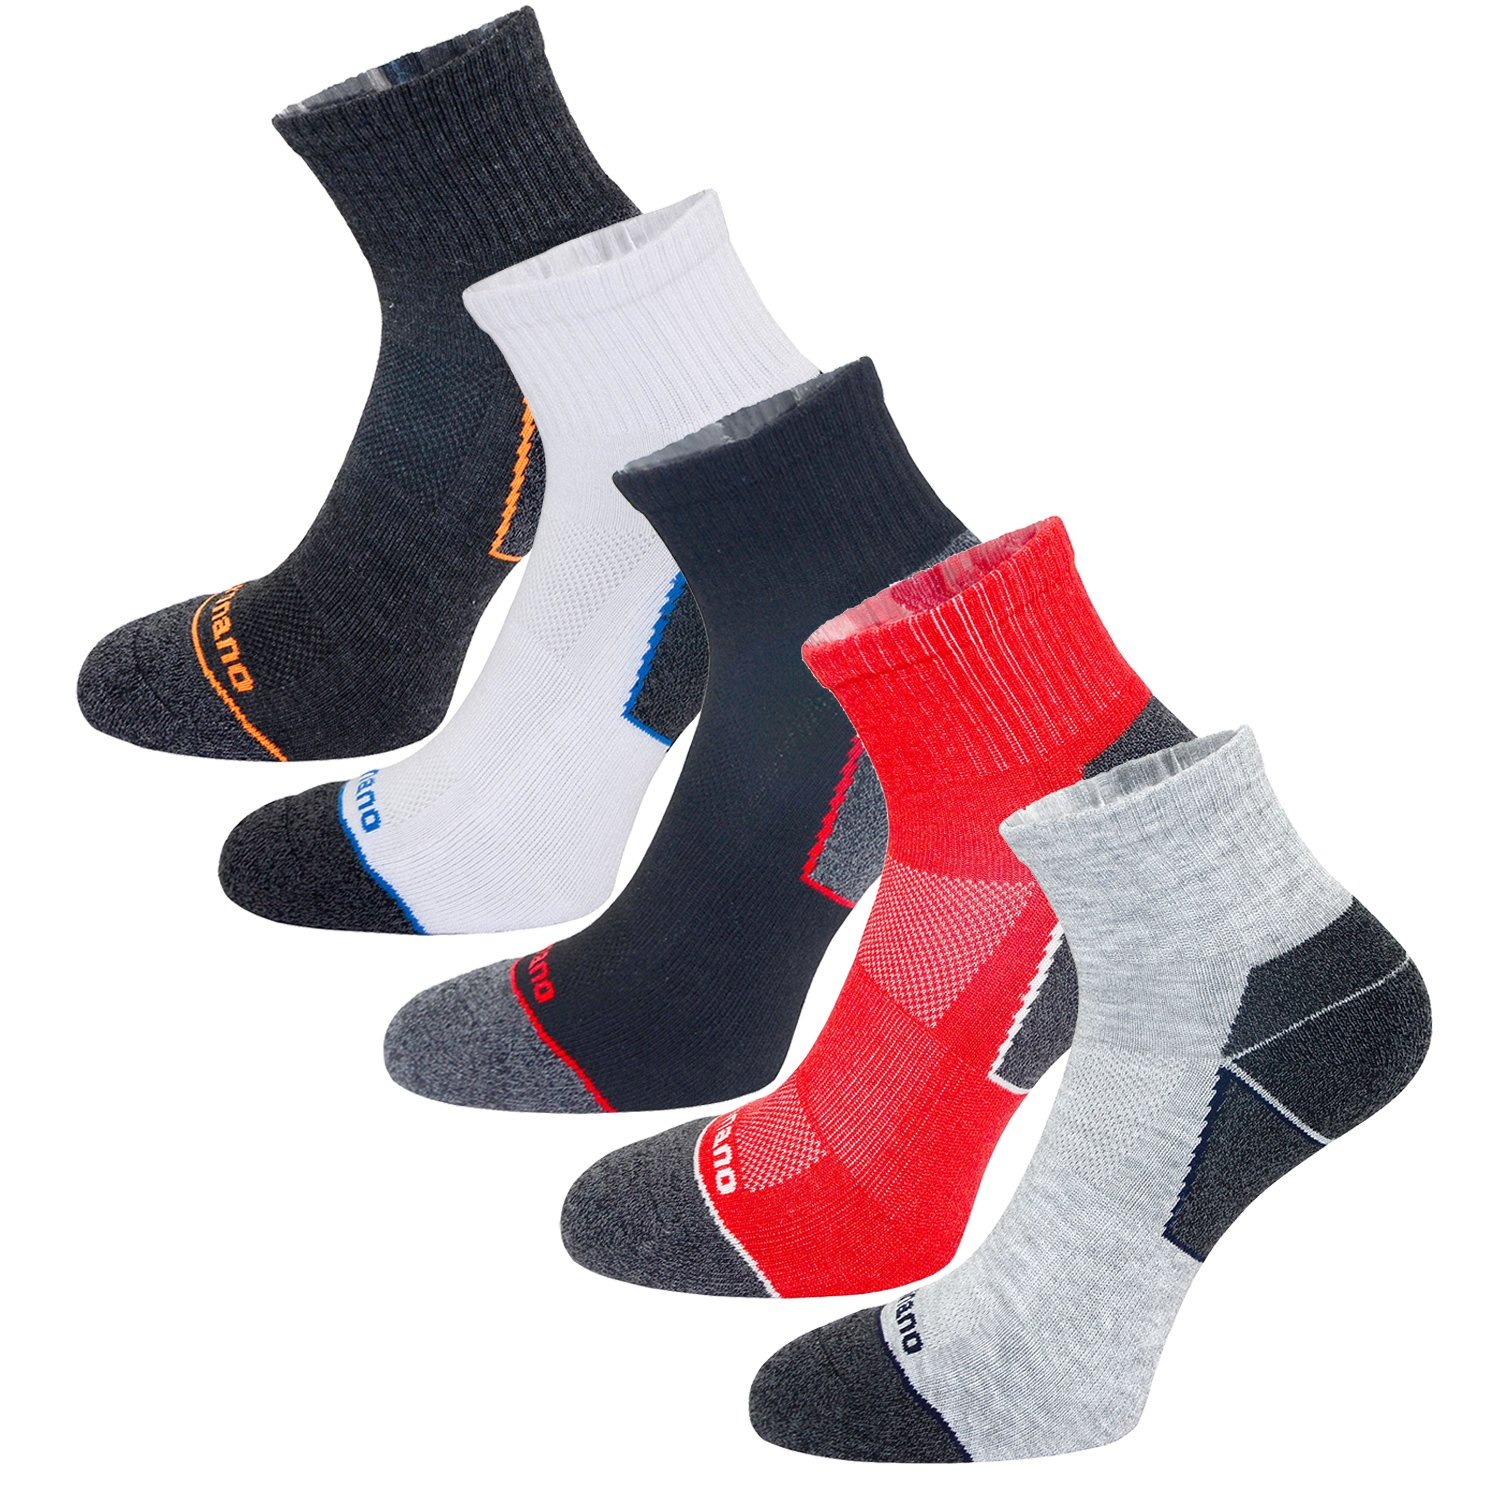 Aaronano 5 Pairs Hommes Coussin Terry Athletic Running Chaussettes Taille UK (6-11) 103